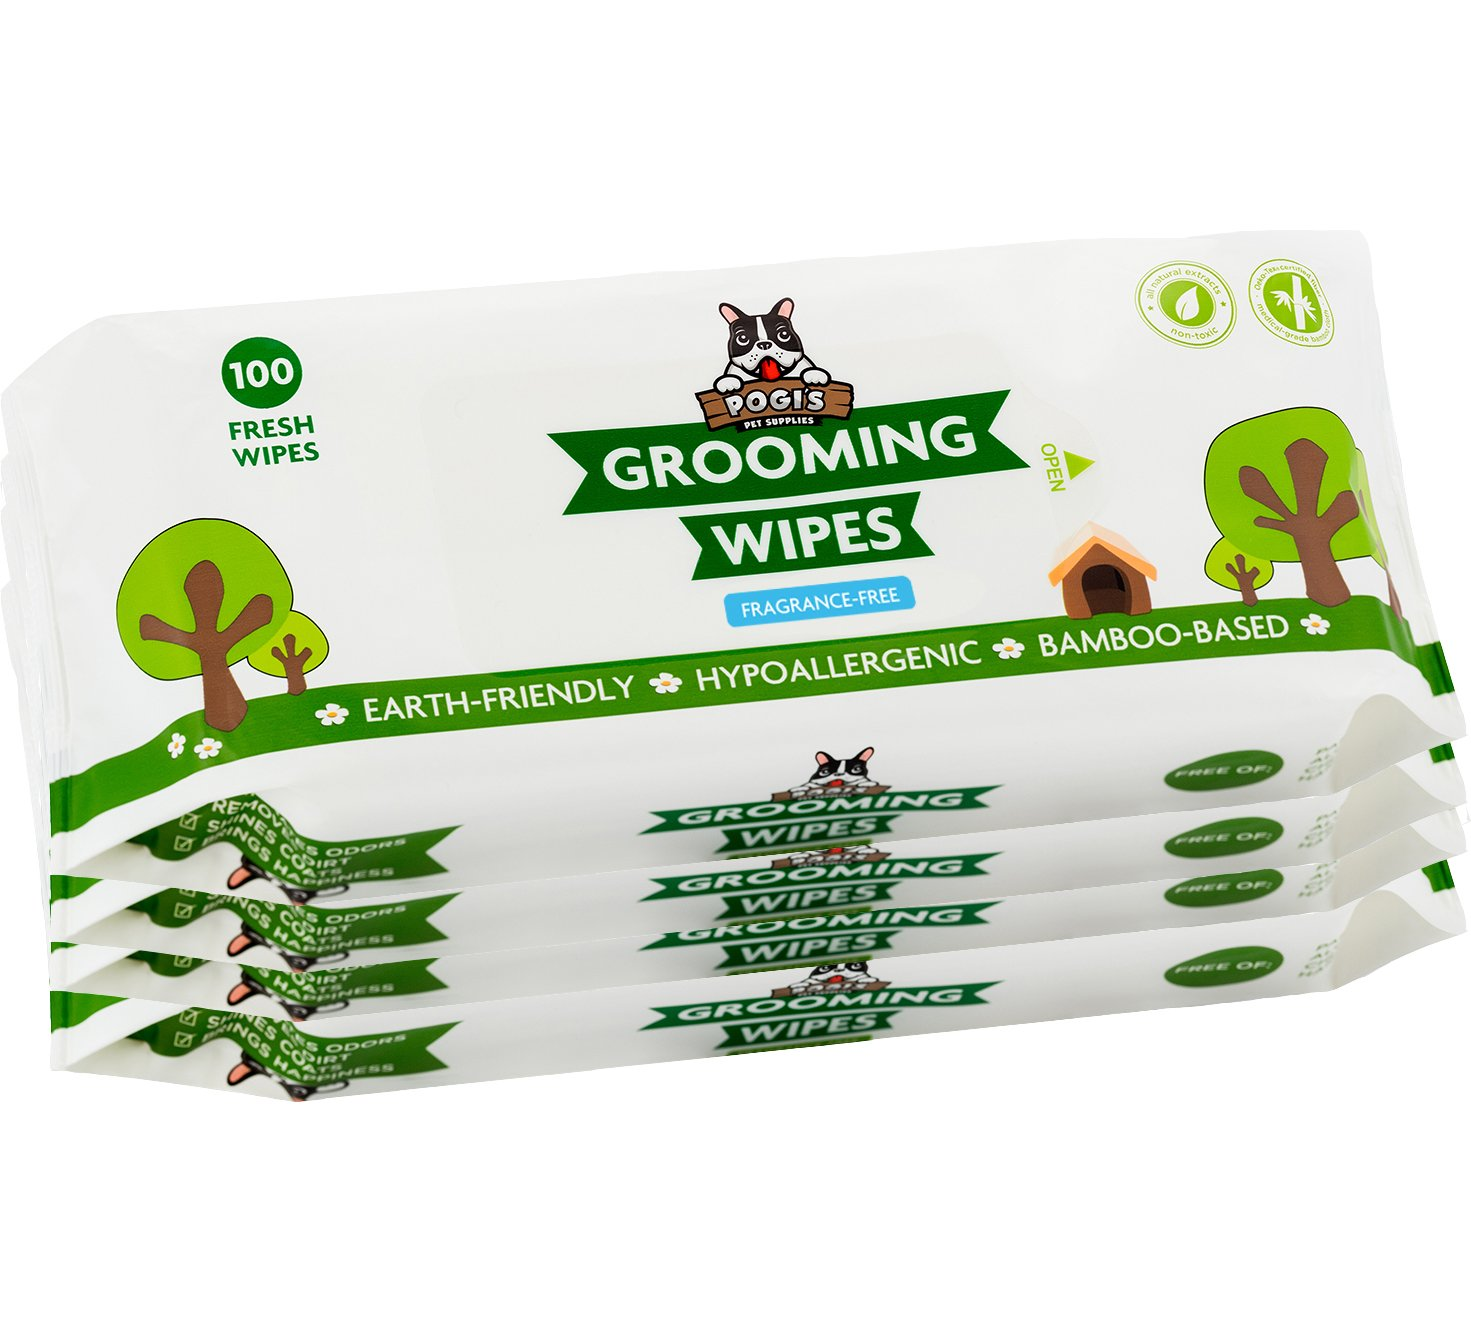 Pogi's Grooming Wipes - 400 Deodorizing Wipes for Dogs & Cats - Large, Hypoallergenic, Fragrance-Free by Pogi's Pet Supplies